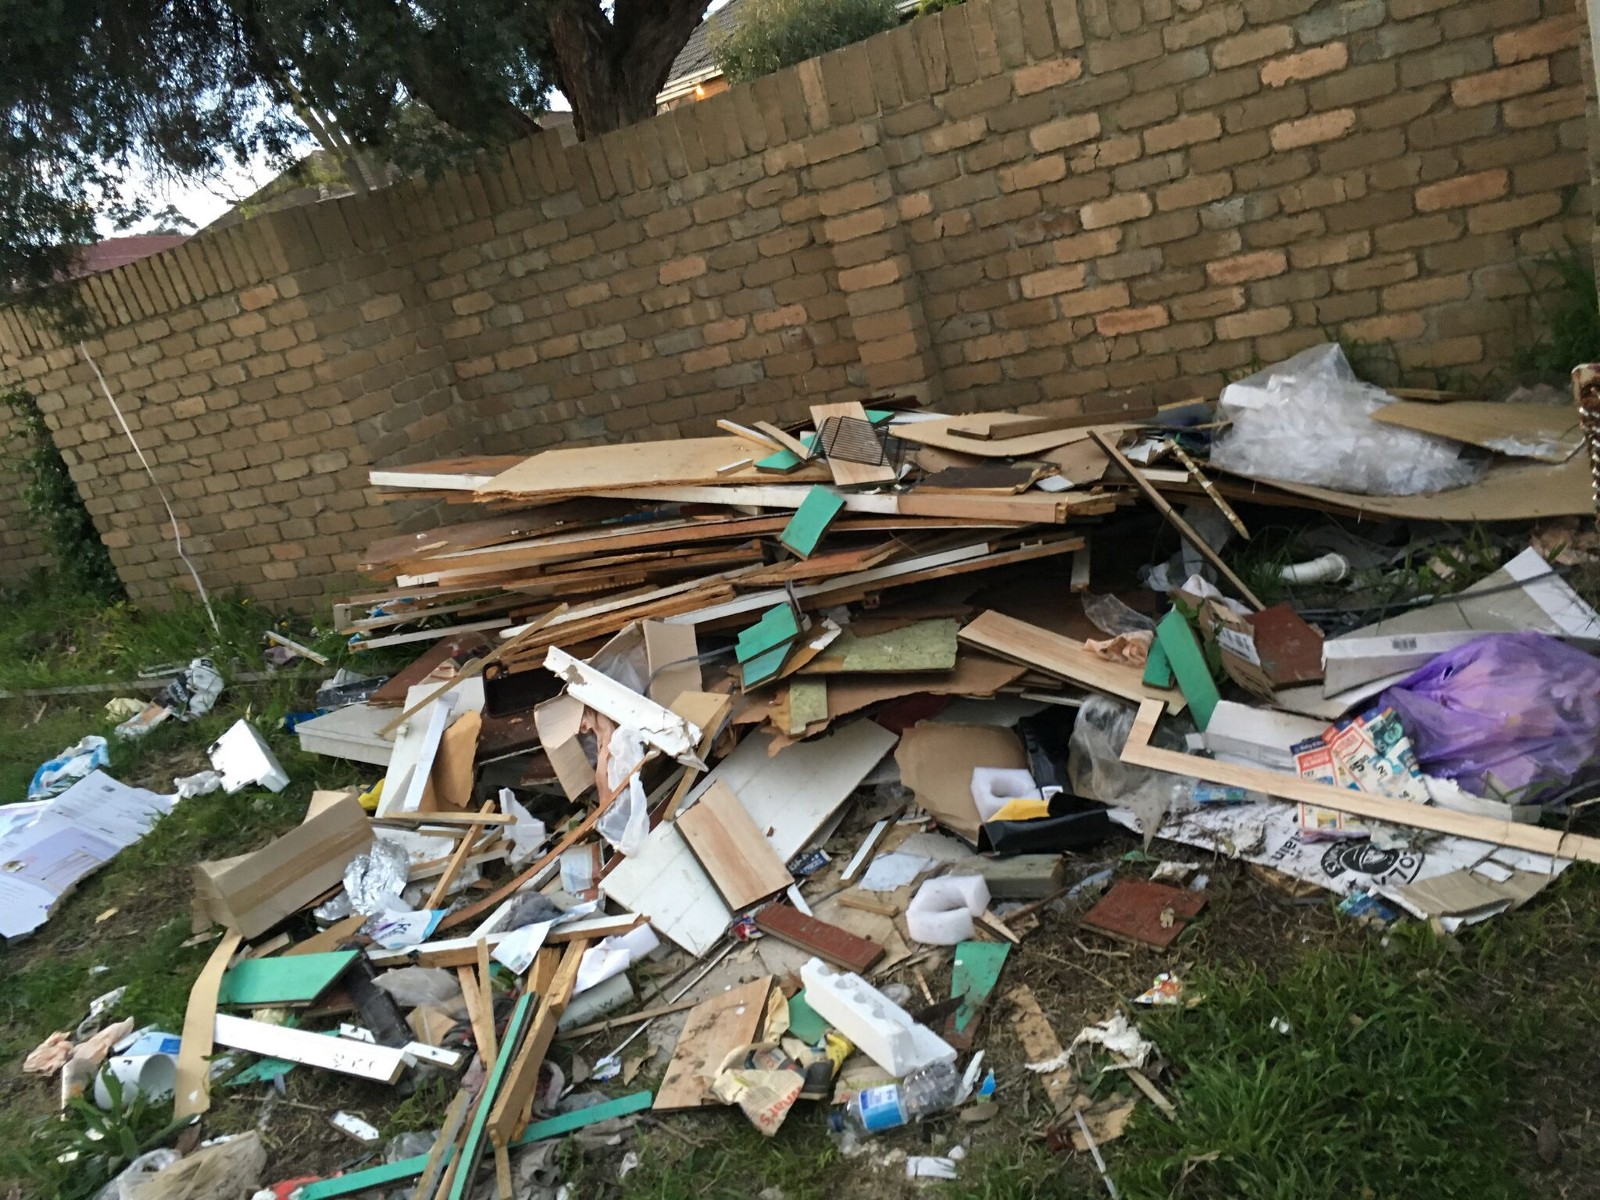 House waste removal companies